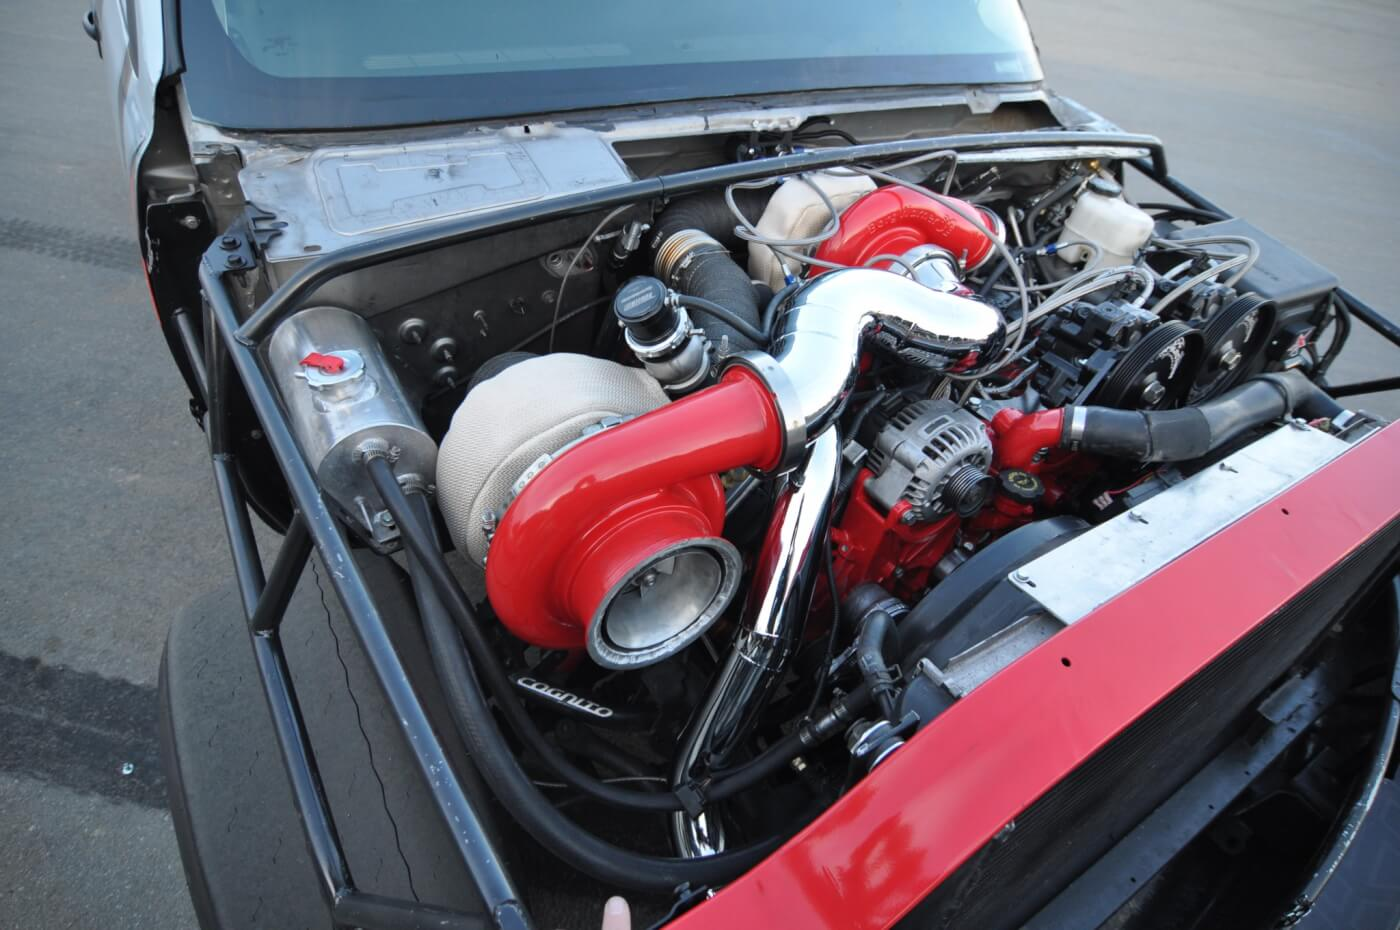 The turbo system is a custom setup with Industrial Injection S480/S510 compound turbo combo.